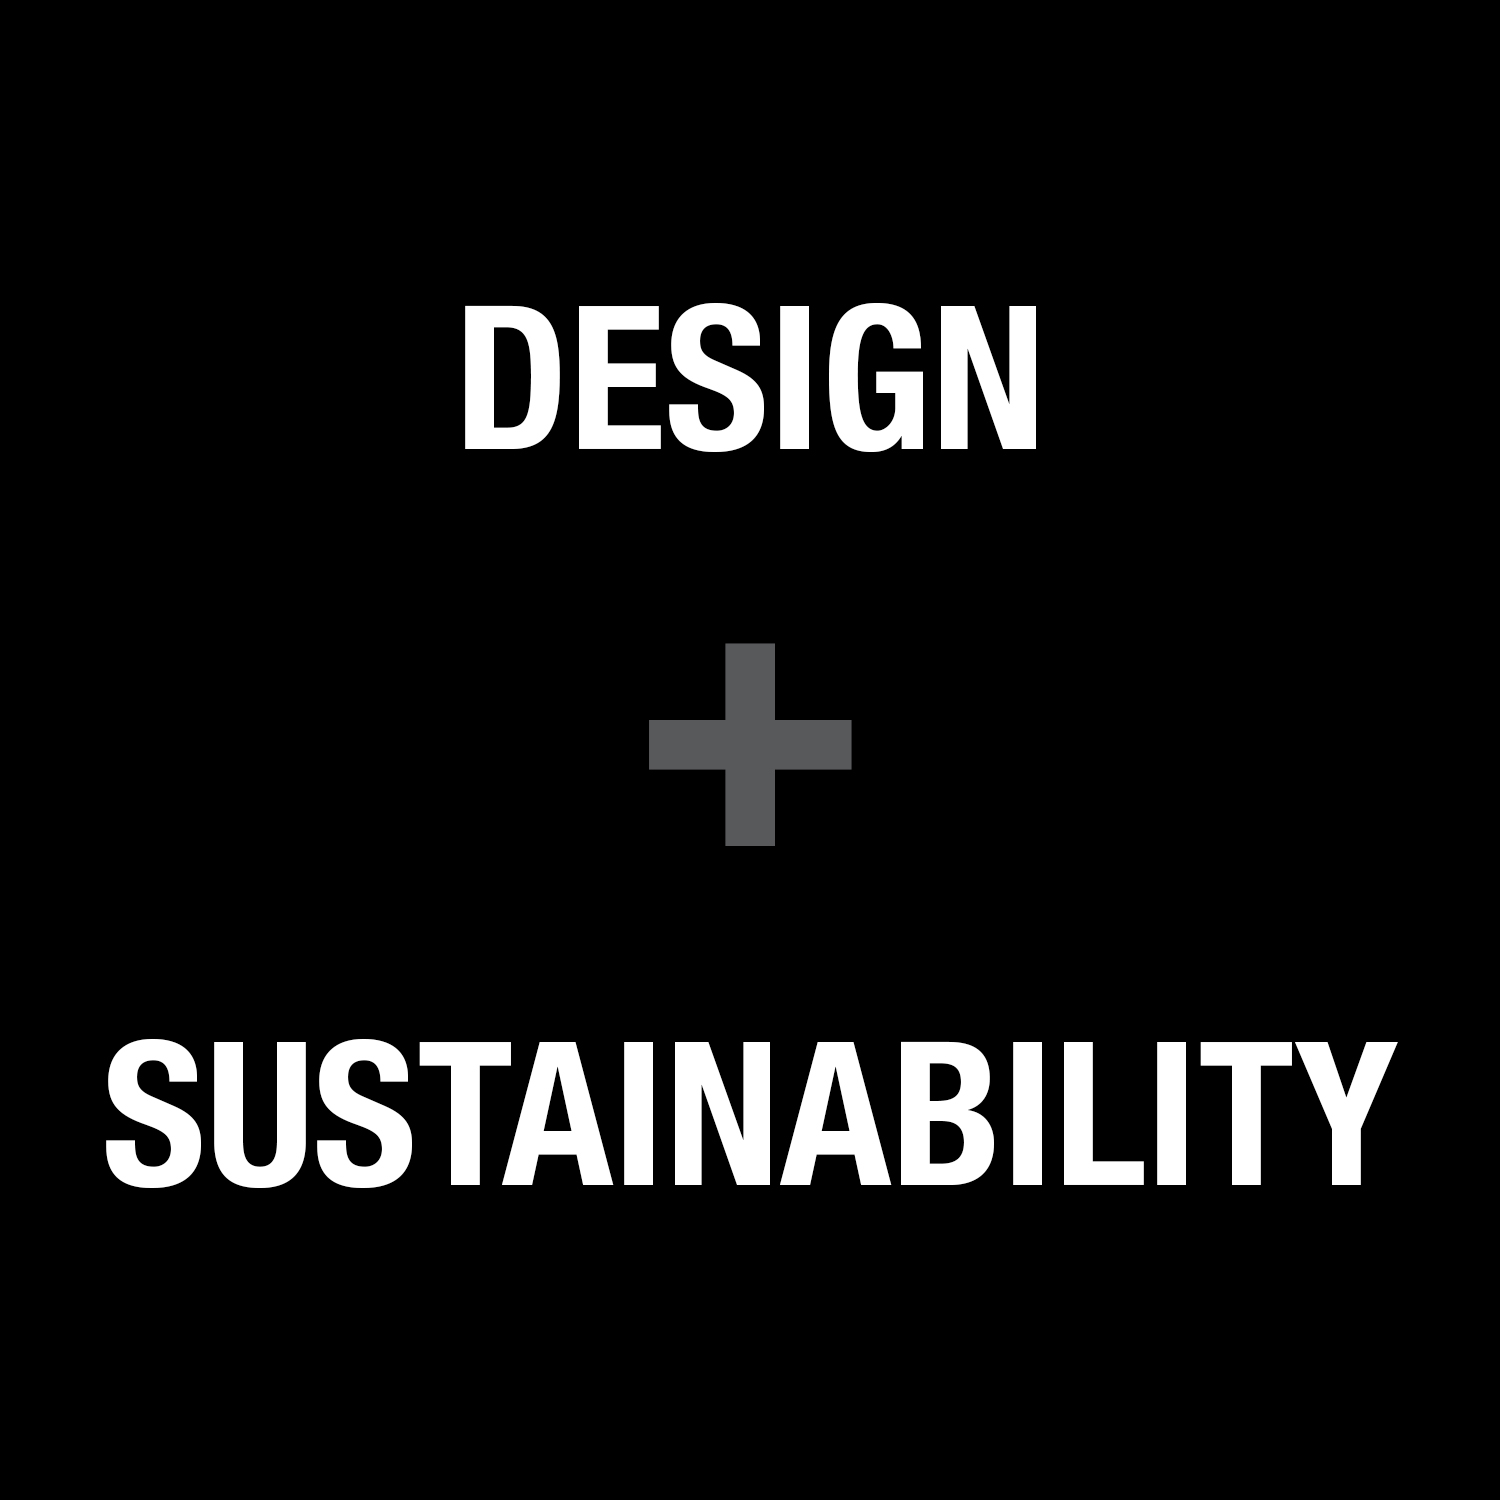 Design+Sustainability.jpg